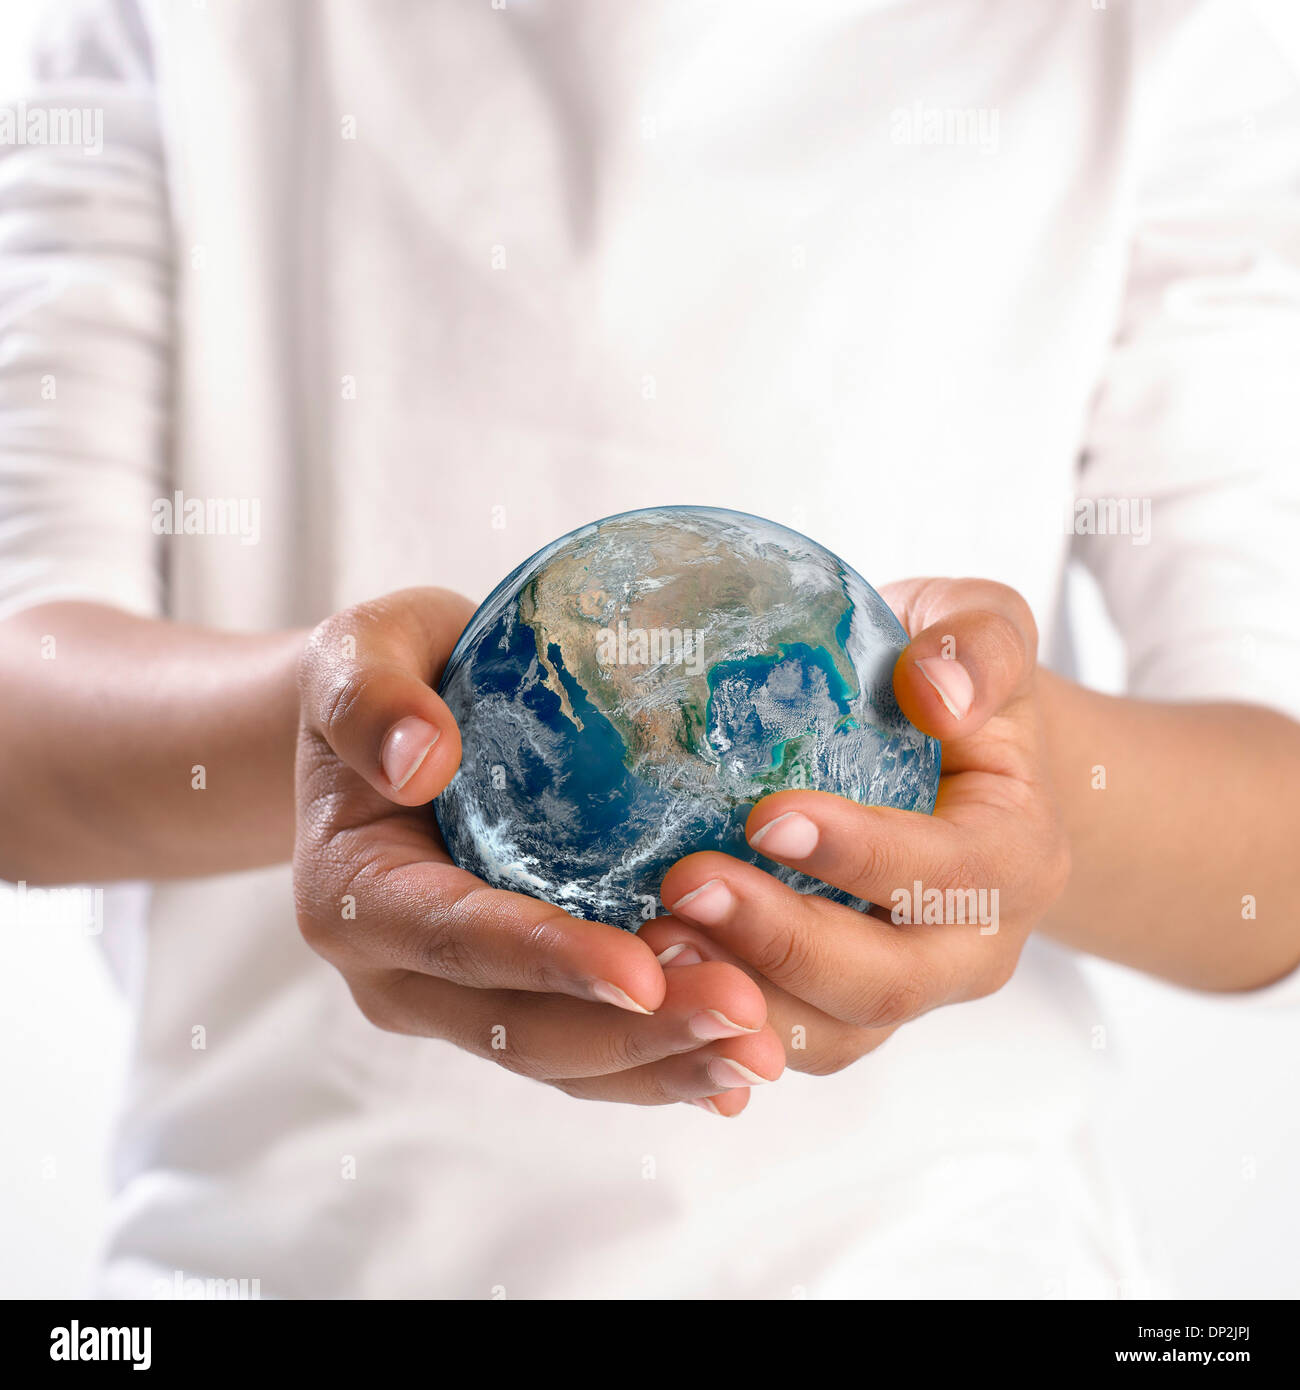 Earth held in child's hands - Stock Image